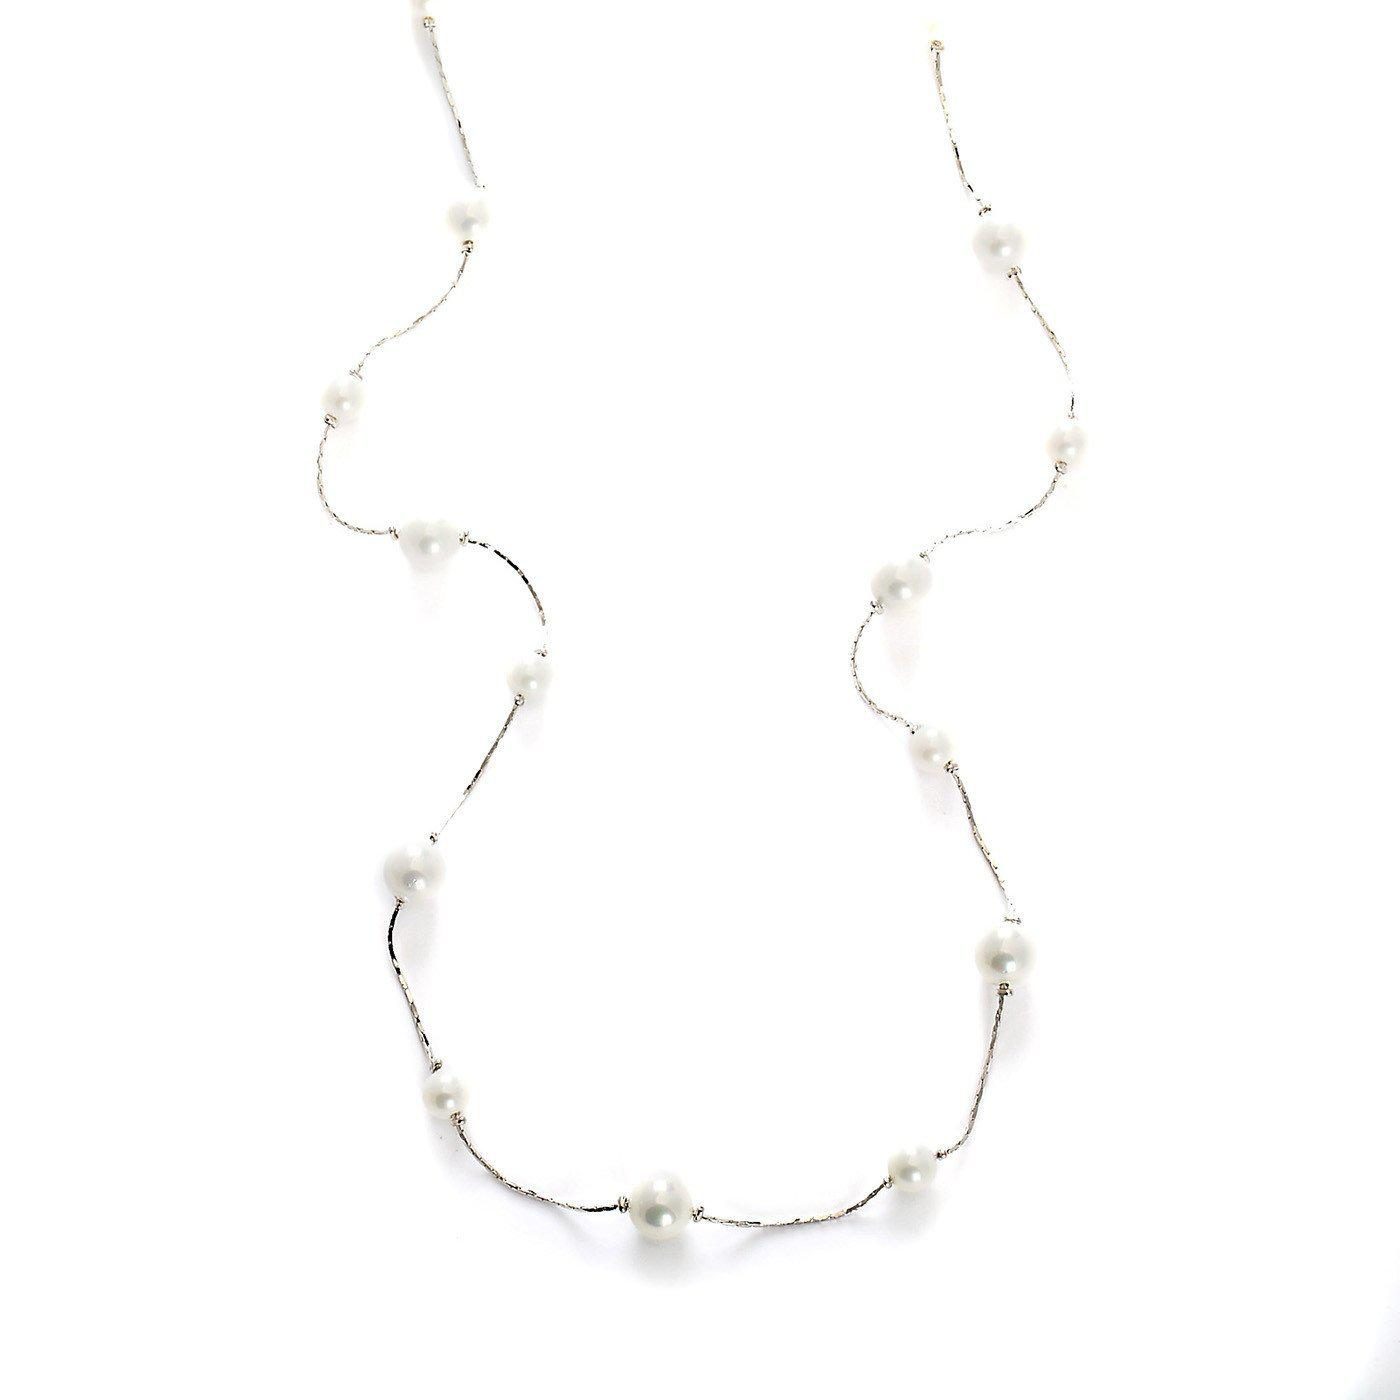 Silver Sizzle Pearls Long Necklace-Blinglane